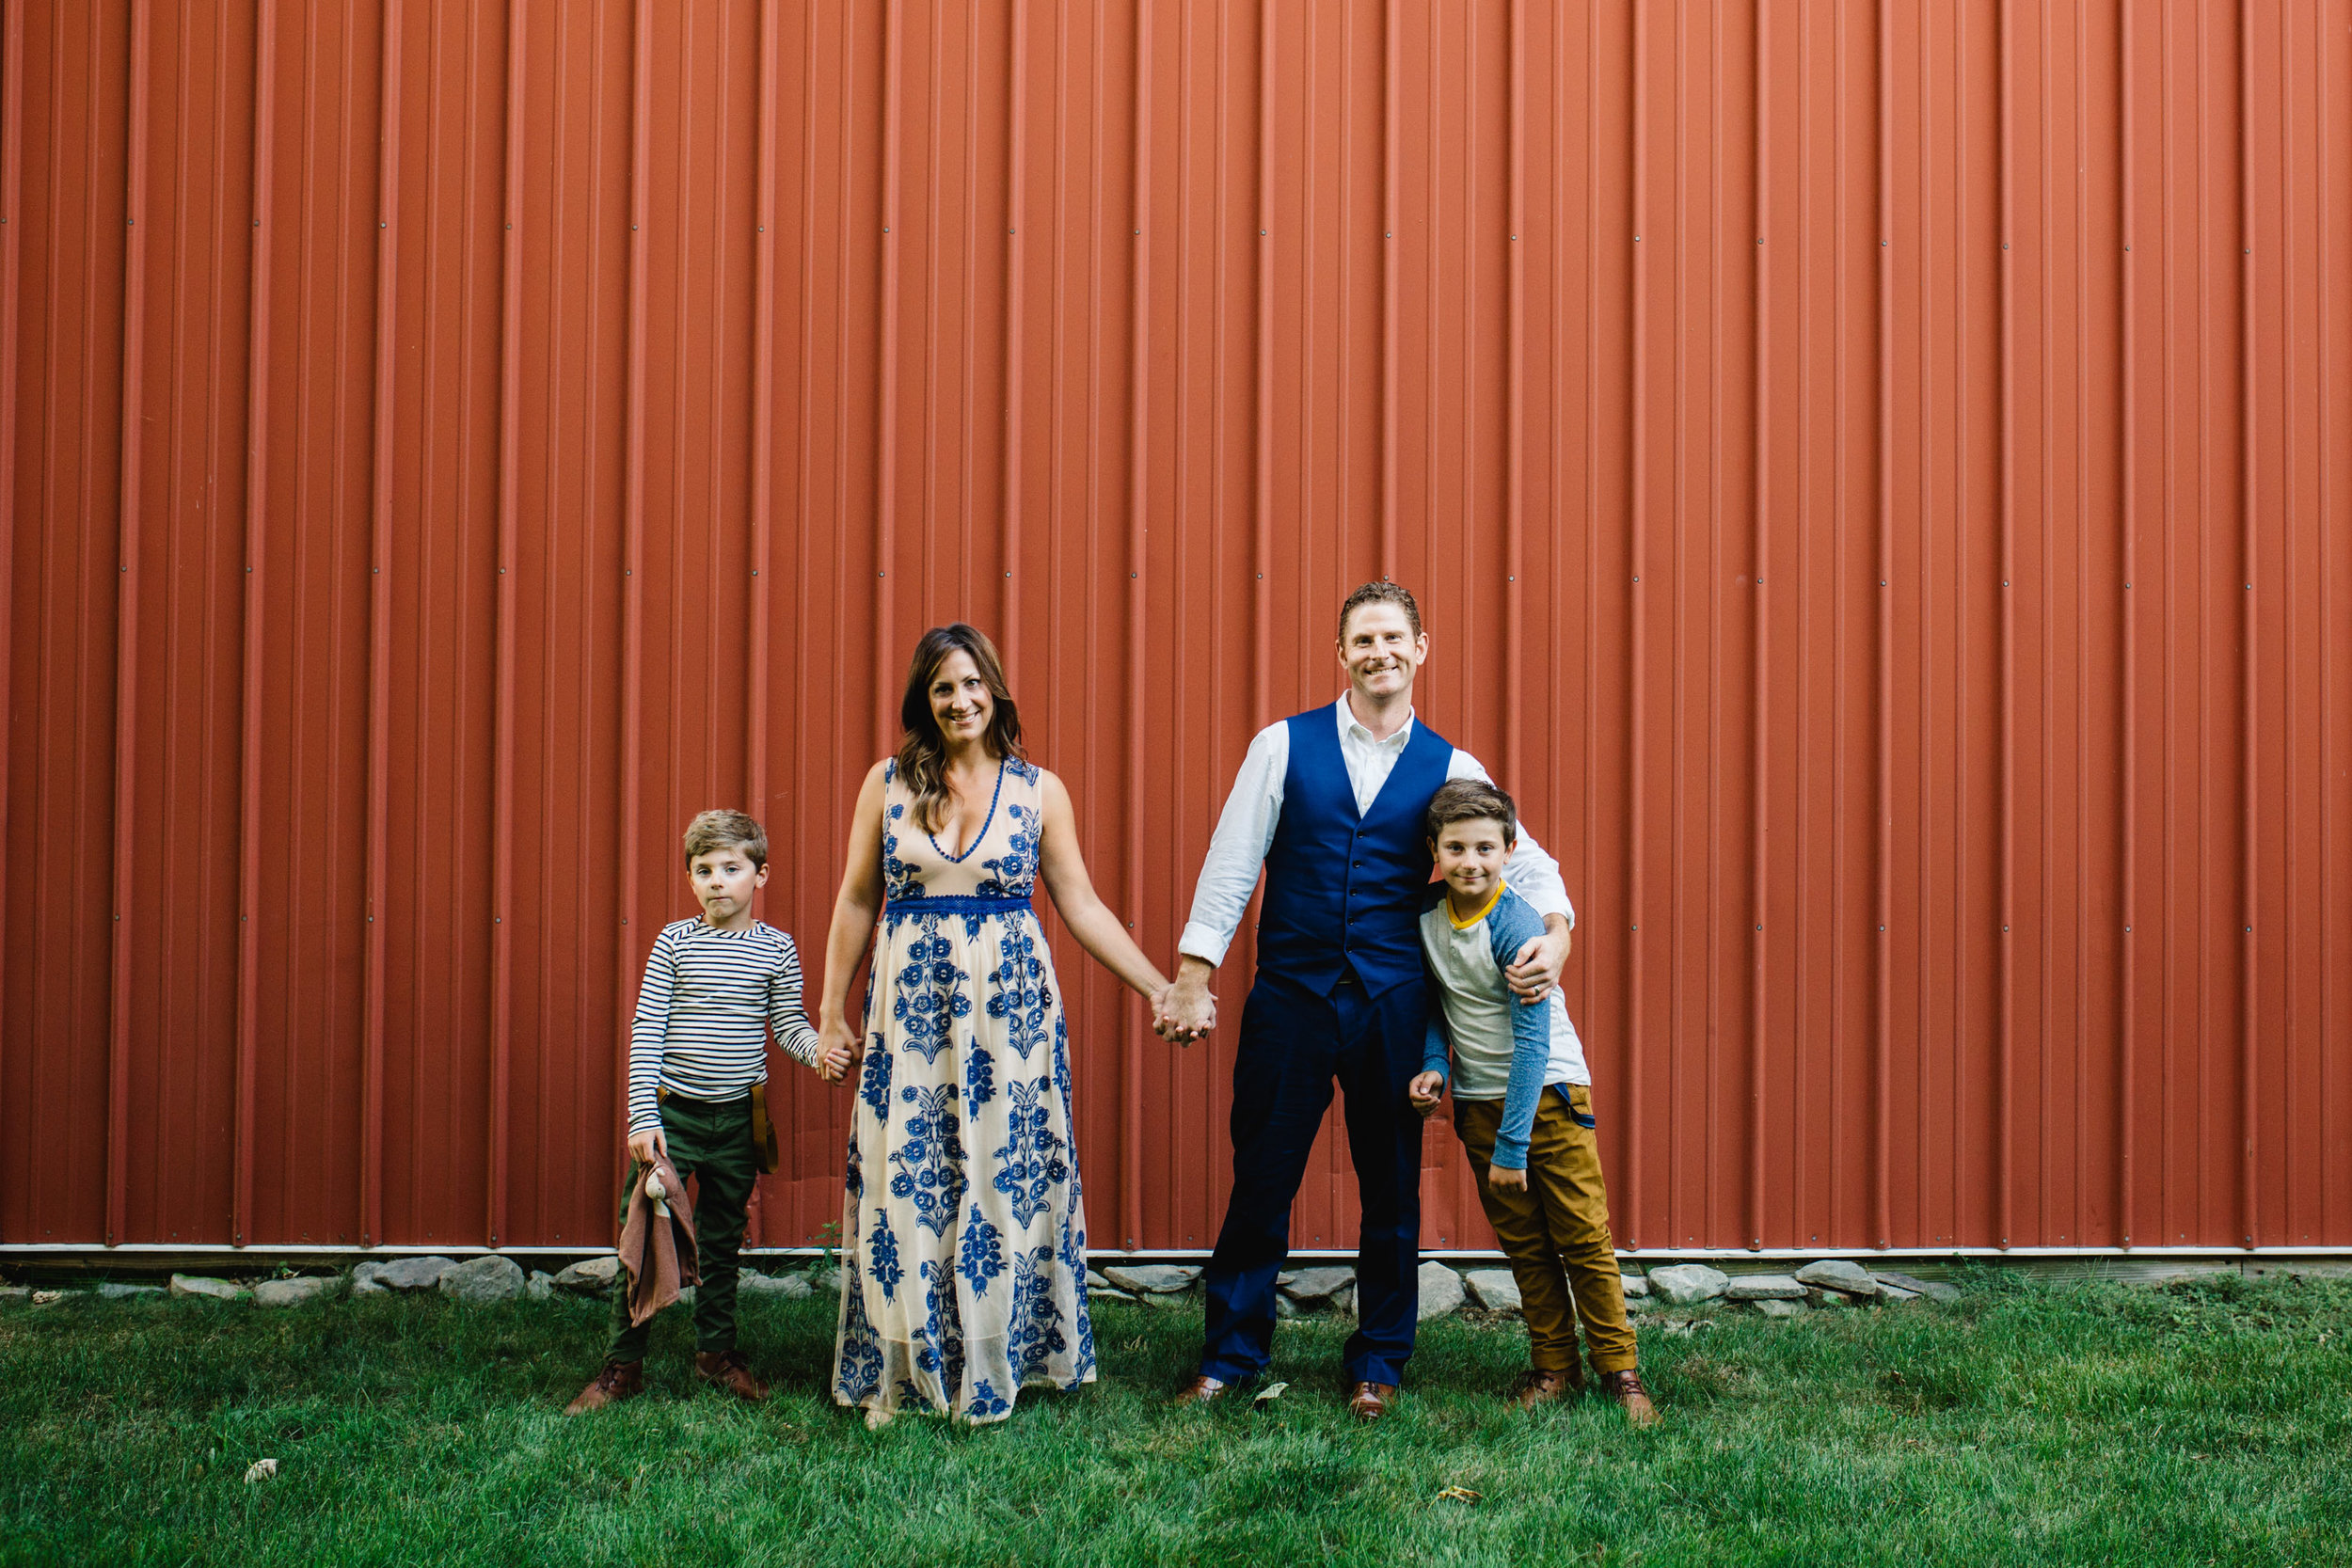 family portrait - lifestyle | Jennifer Tippett Photography